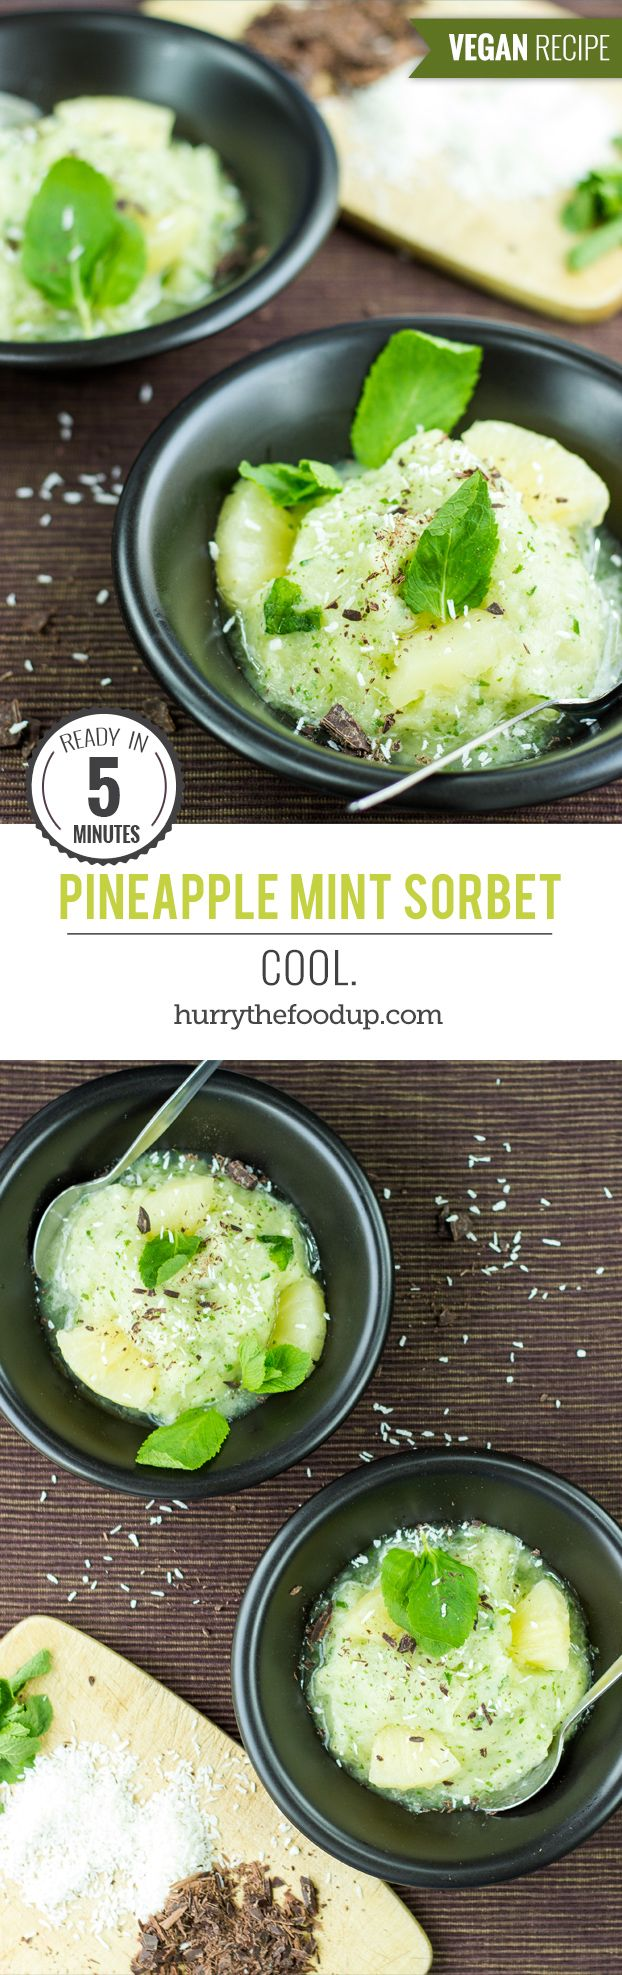 2 Ingredient Pineapple Sorbet. Cool. #dessert #sorbet | hurrythefoodup.com